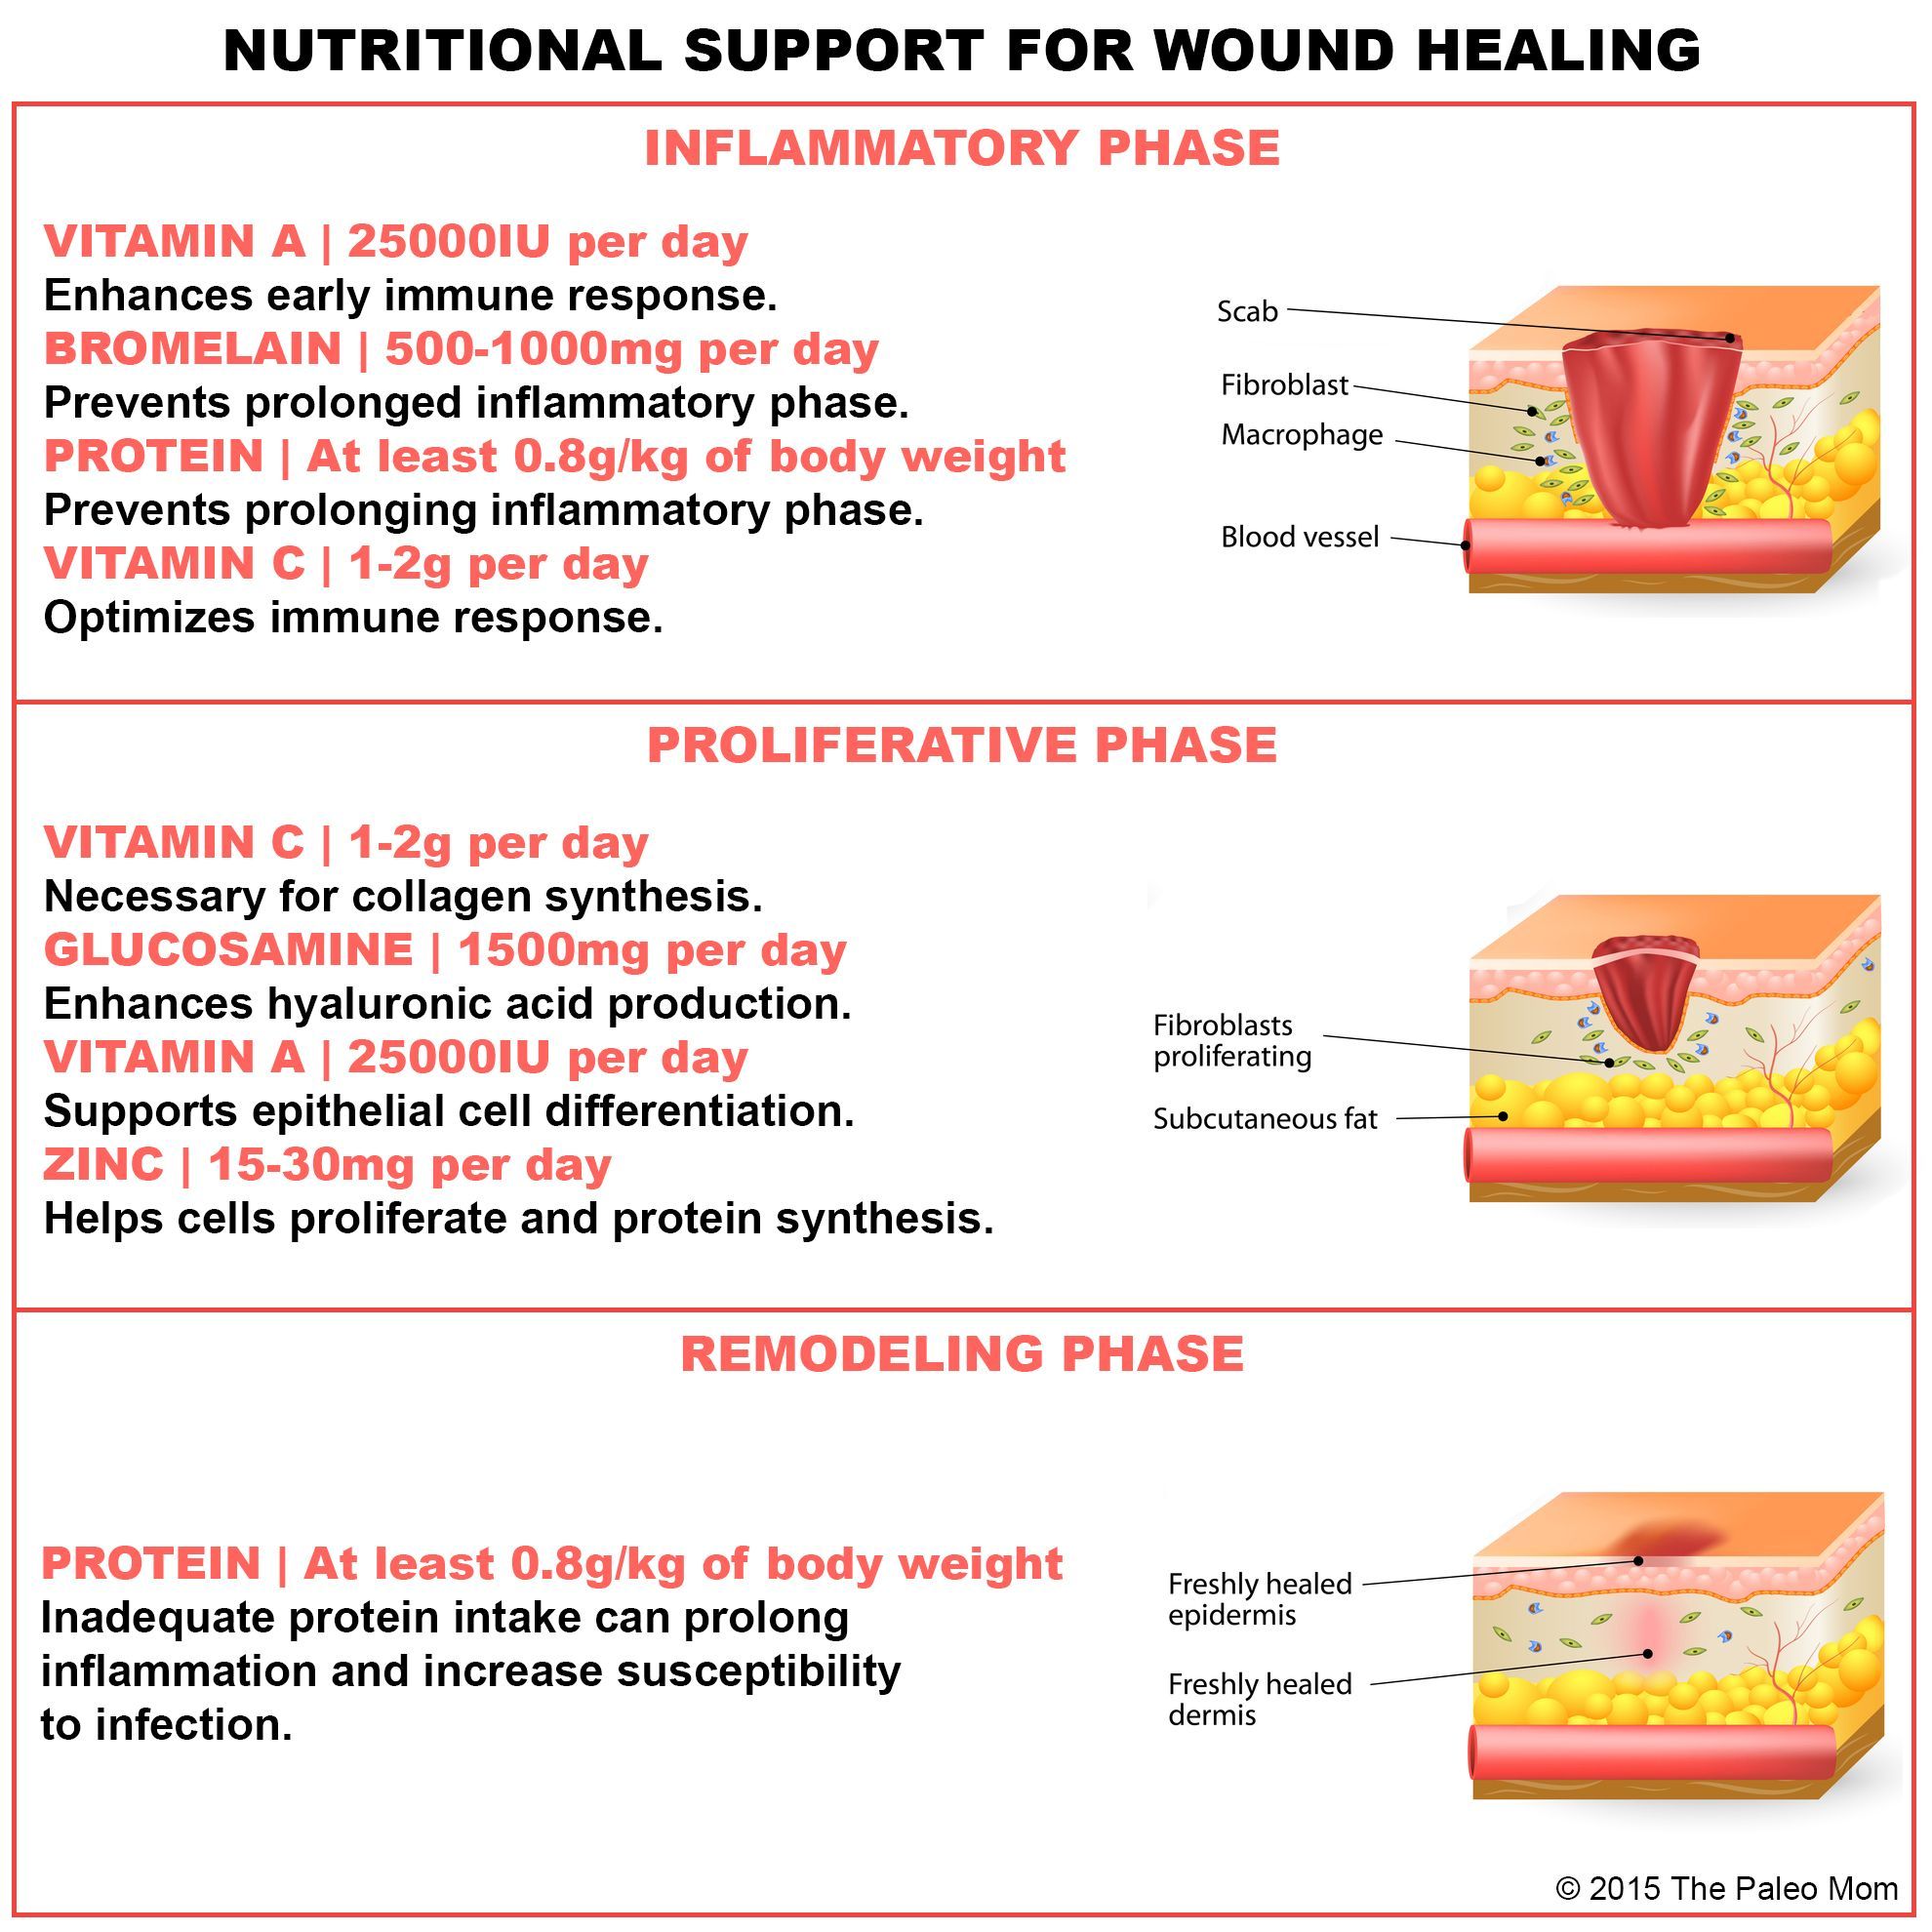 Nutritional Support For Injury And Wound Healing Nursing